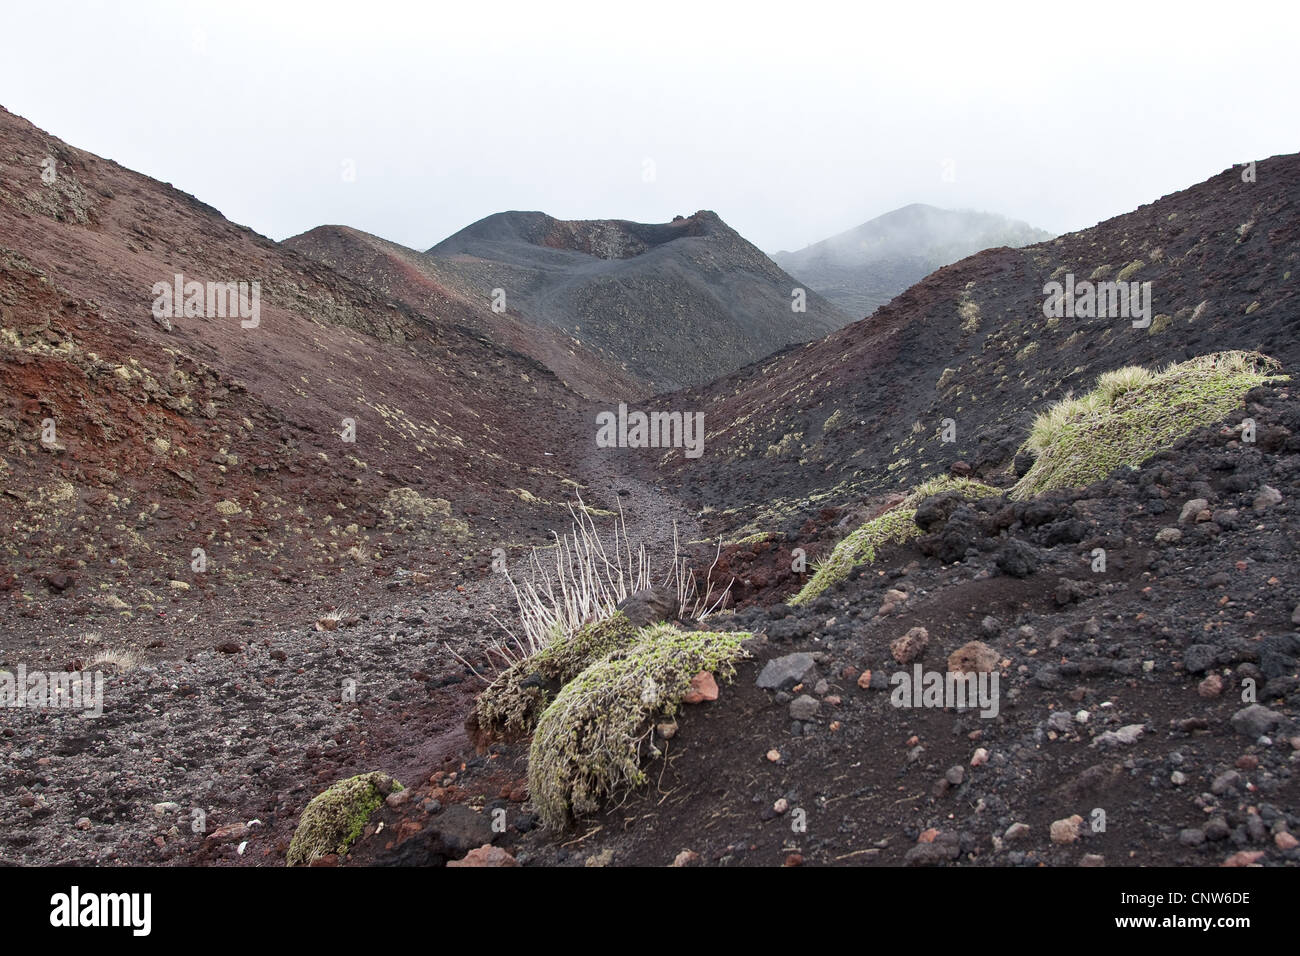 volcanic landscapes at Mount Etna with dwarf shrubs, Italy, Sicilia - Stock Image